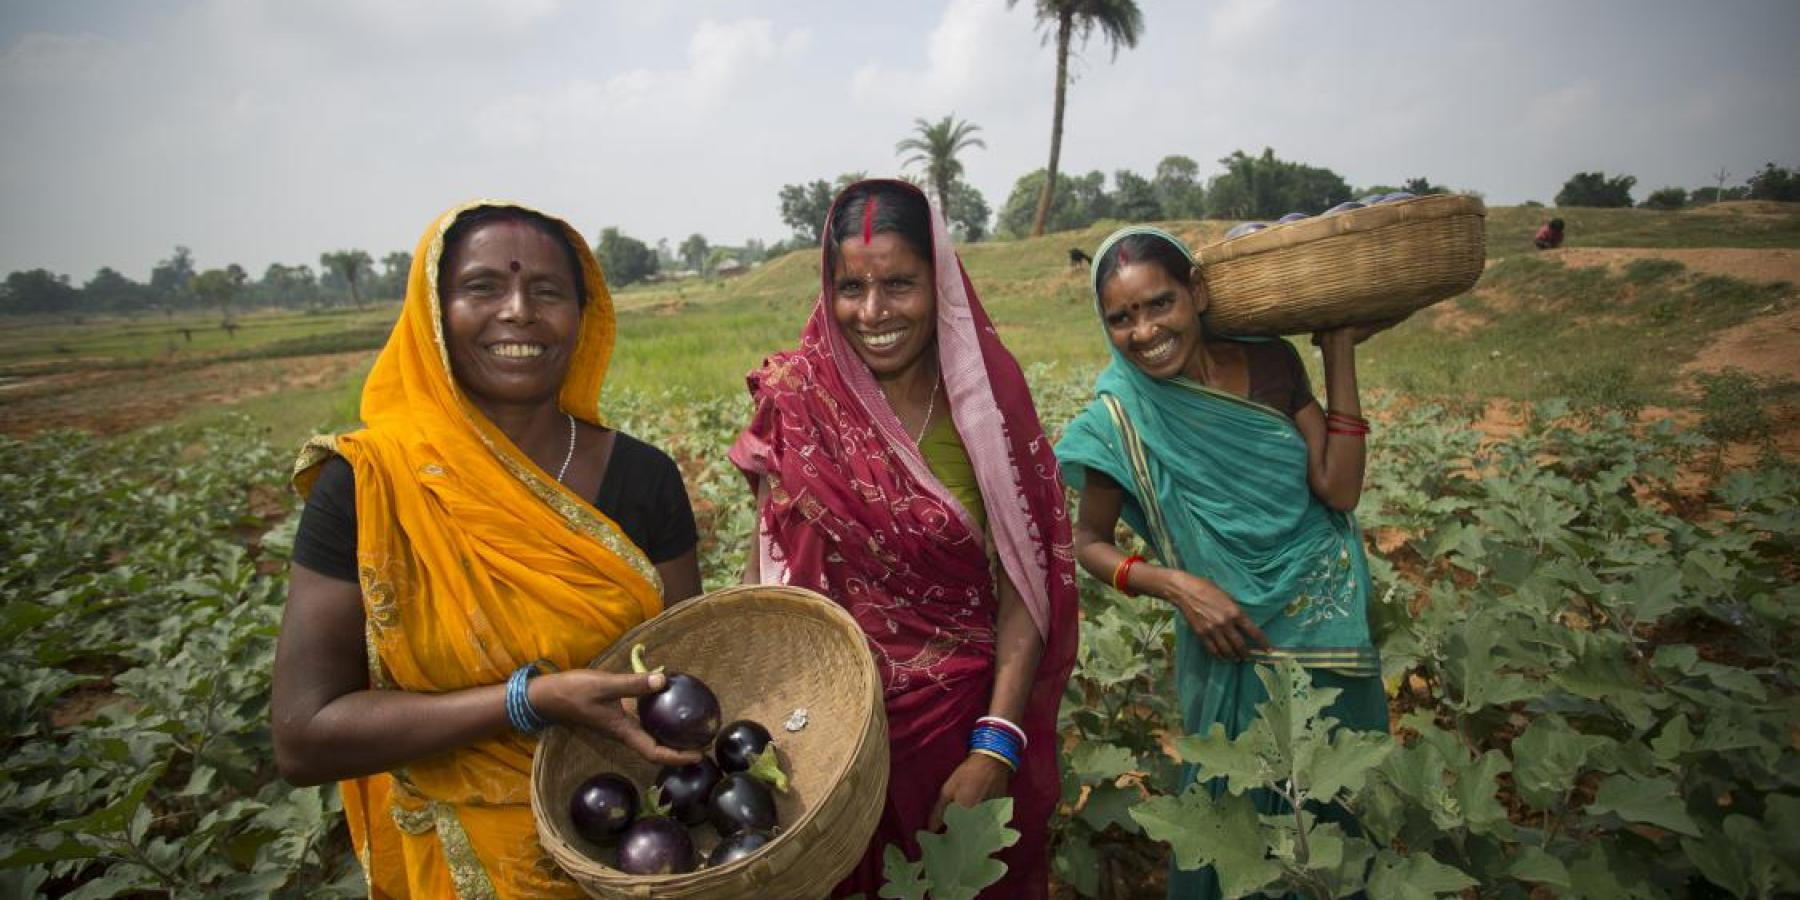 Jake Lyell Geeta Devi, Sumitra Devi and Mina Devi are farmers in the Banka District of Bihar, one of the poorest districts in India